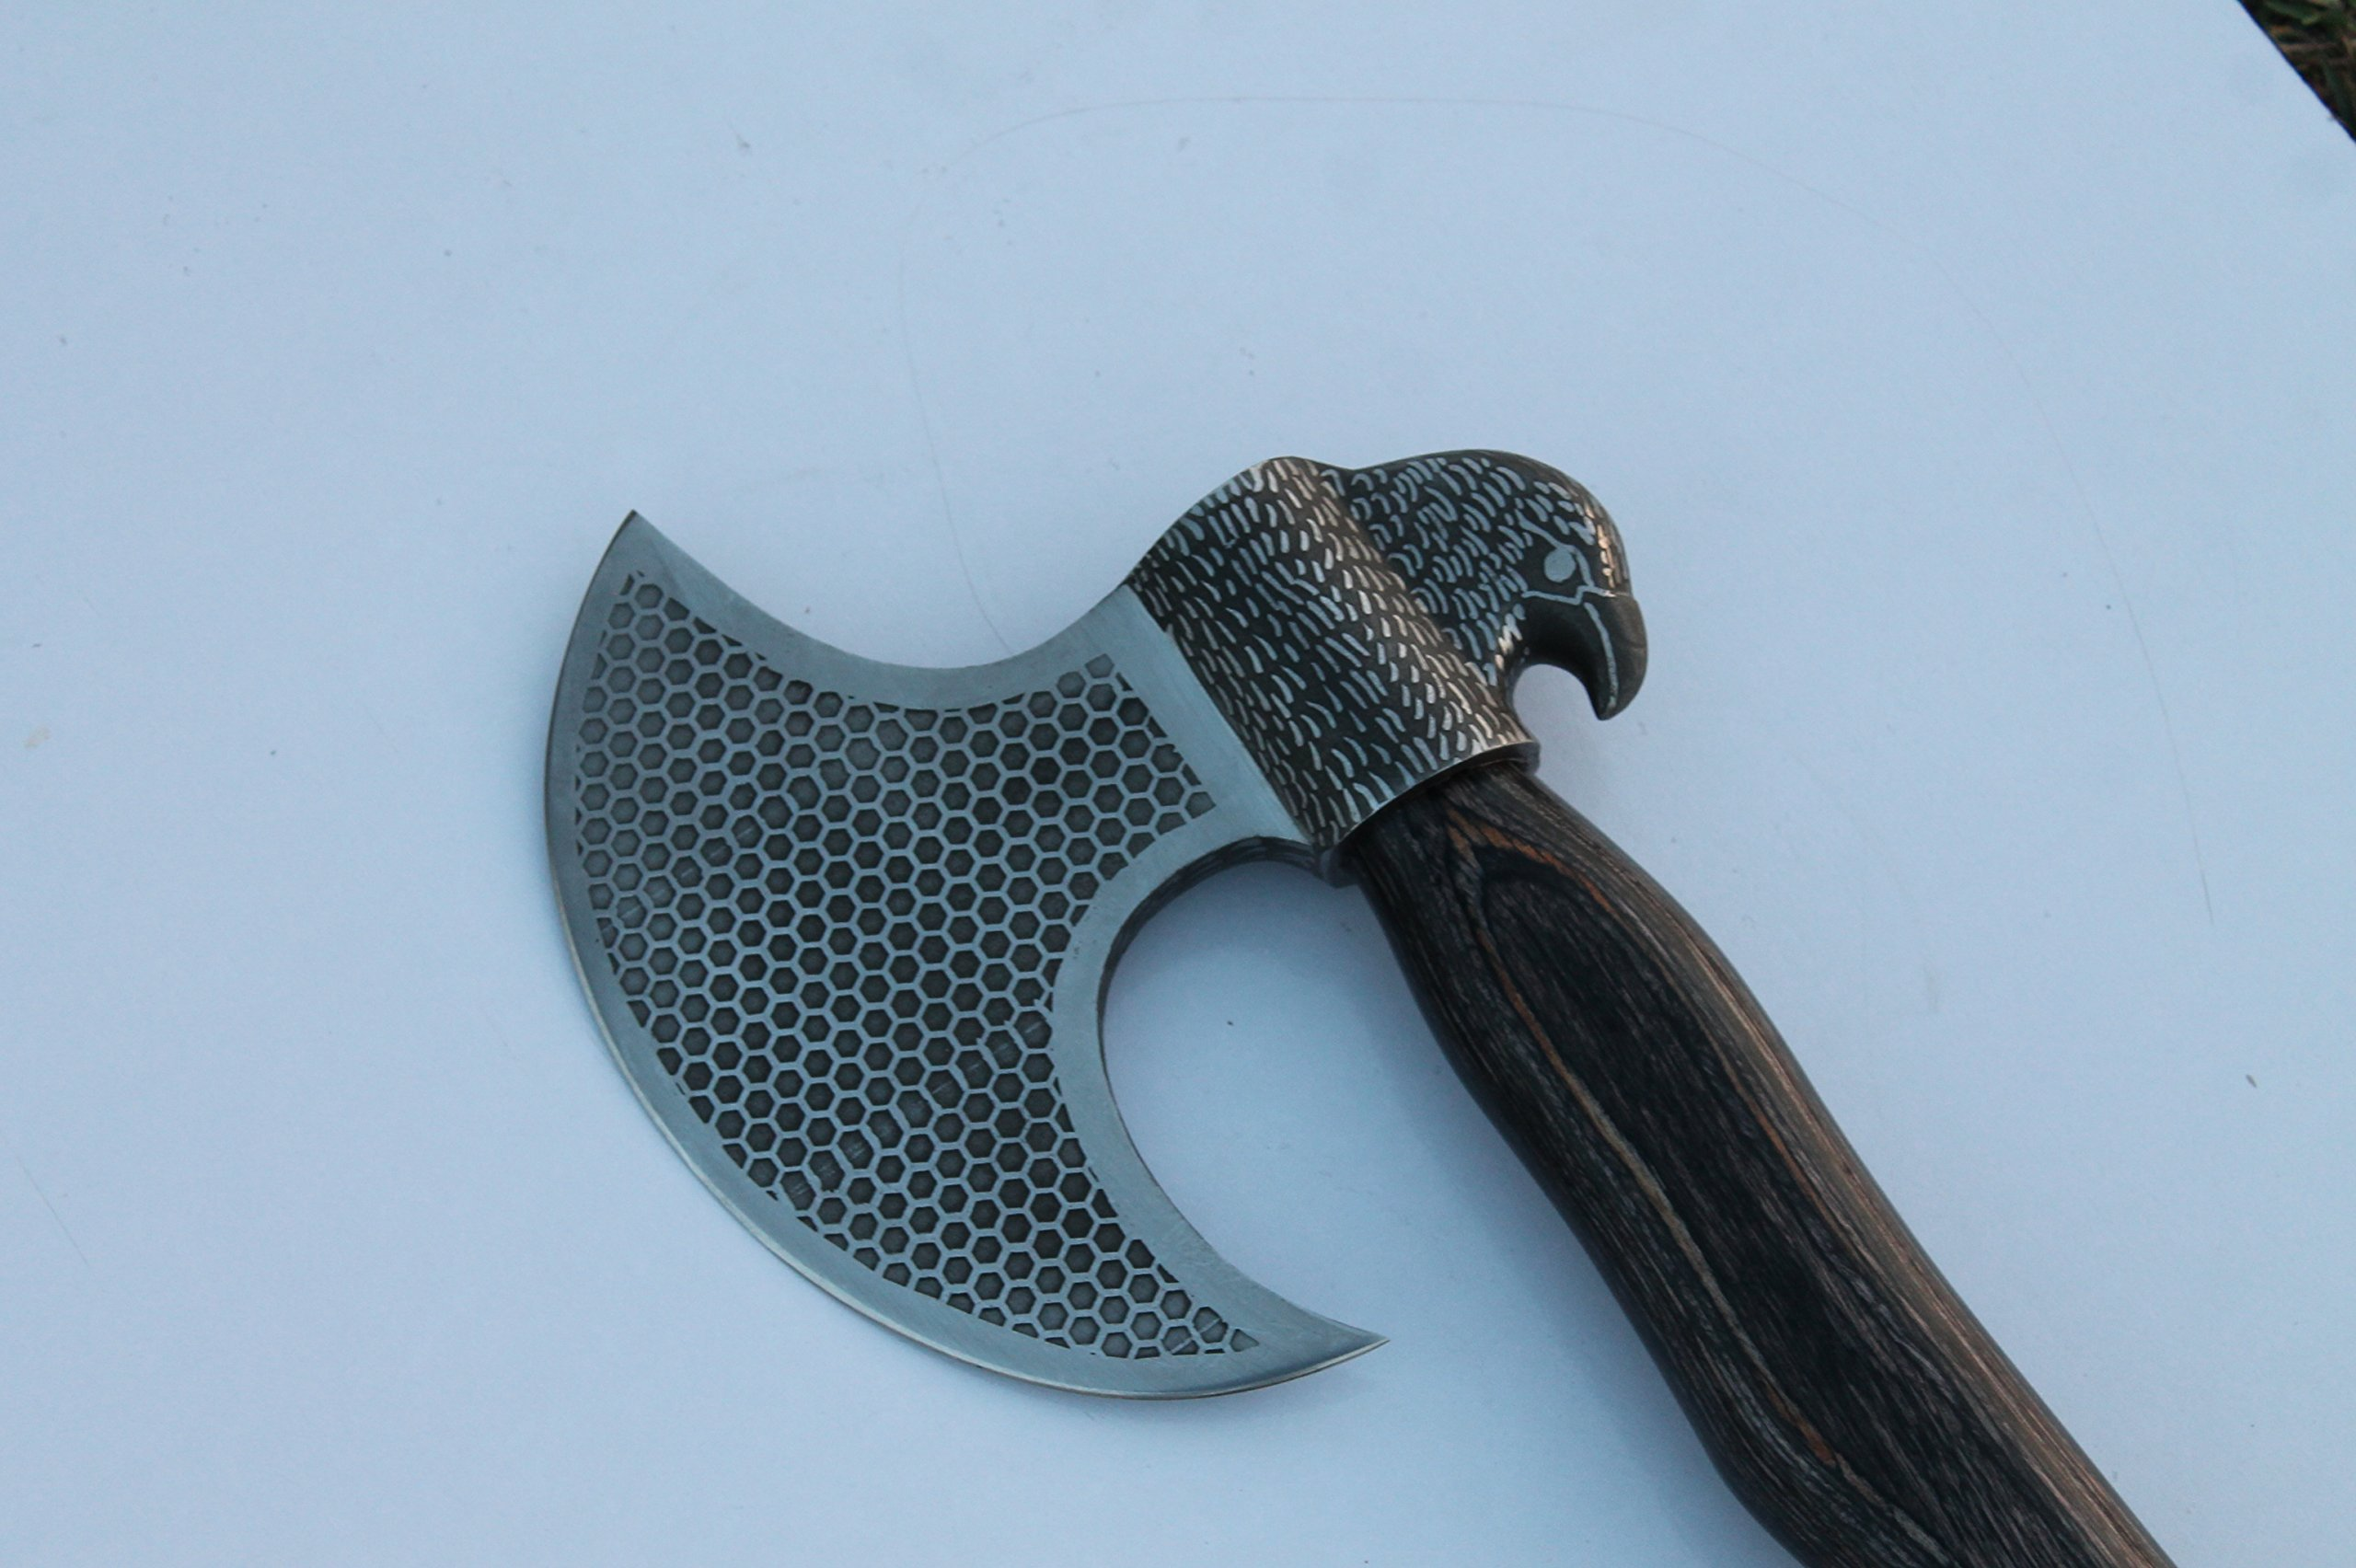 MDM VINTAGE ENGRAVED COMBAT TACTICAL AXE & HATCHETS OUTDOOR HIKING CAMPING AXE X FULLY FUNCTIONA AXE USEABLE FOR HARDWORK by MDM AXEs & HUNTING TOOls (Image #2)